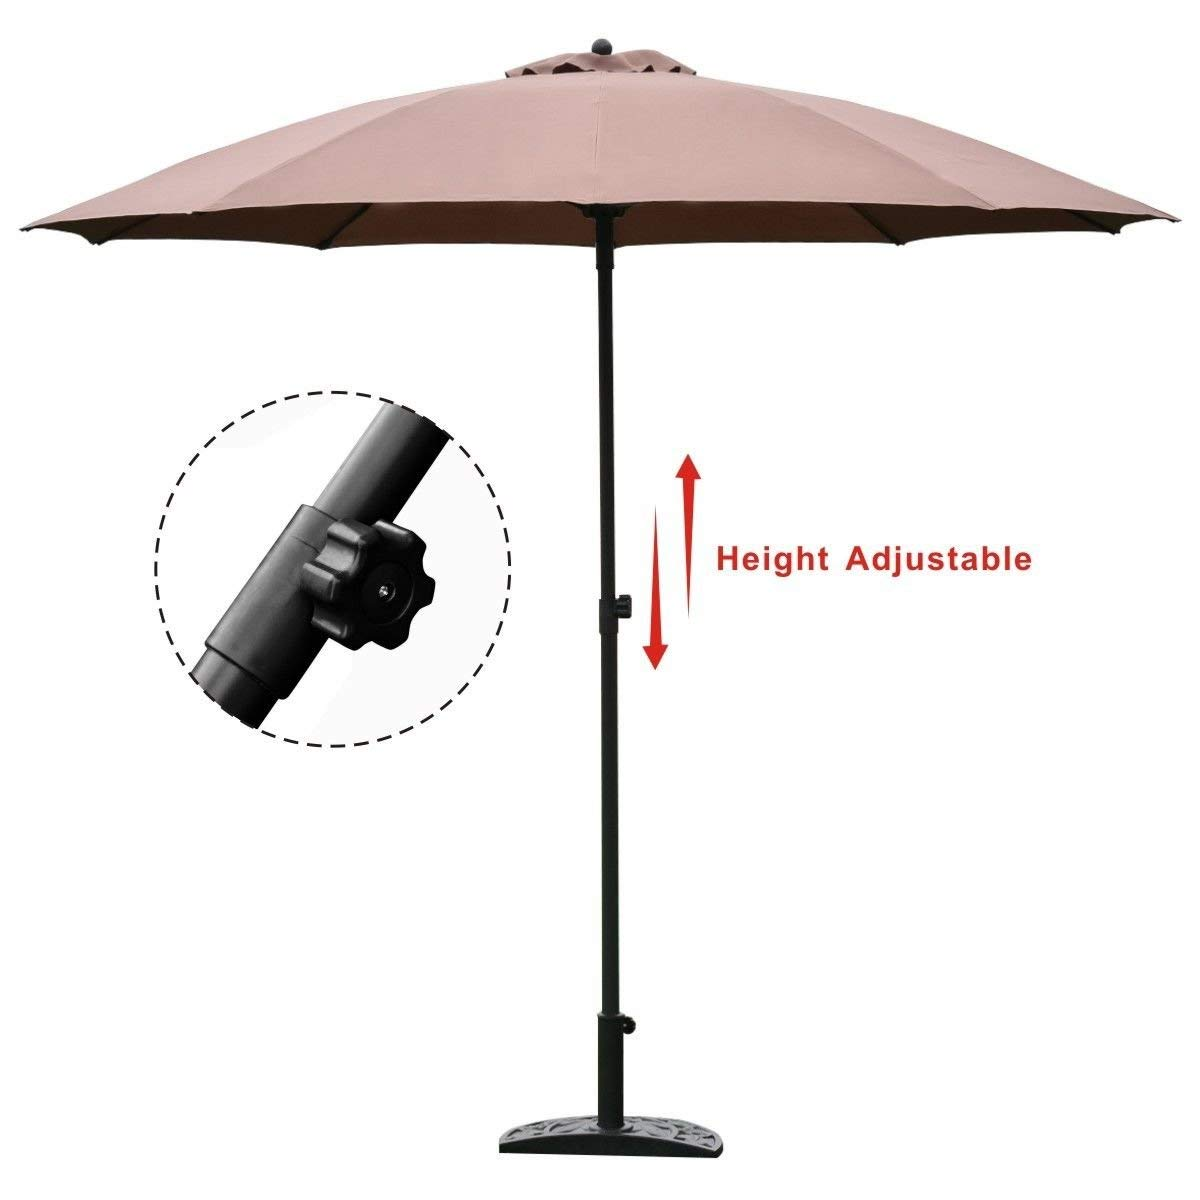 KCHEX>8.2Ft Height Adjustable Outdoor Patio Umbrella Market Sun Shade Beech Yard Tan>Our 8.2ft 10 Rids Height Adjustable Outdoor Patio Umbrella is A Sun Tent, Rain Shelter, and More All in One